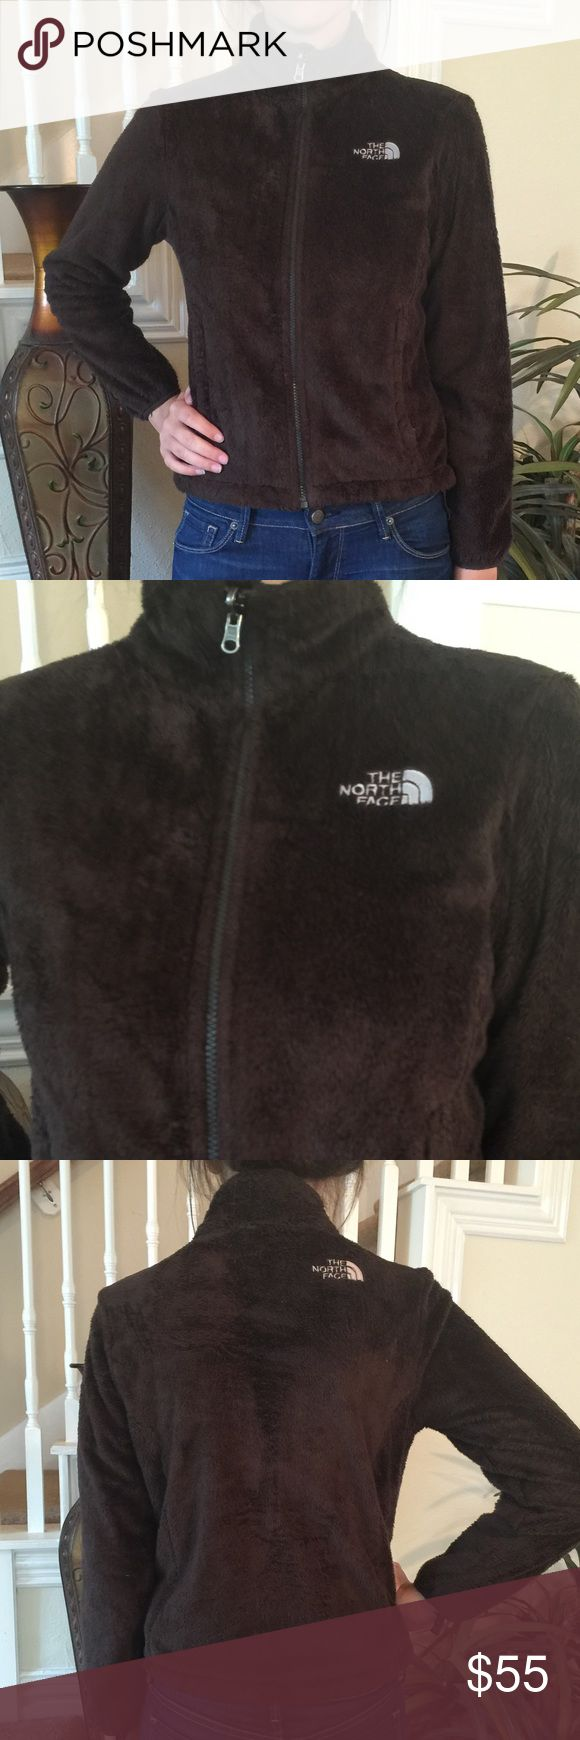 North Face Re-tooled Brown jacket This North Jacket is adorable and perfect for those fall football games! It features an drawstring waist, soft retooled fabric, zipper front pockets and in great condition. North Face Jackets & Coats